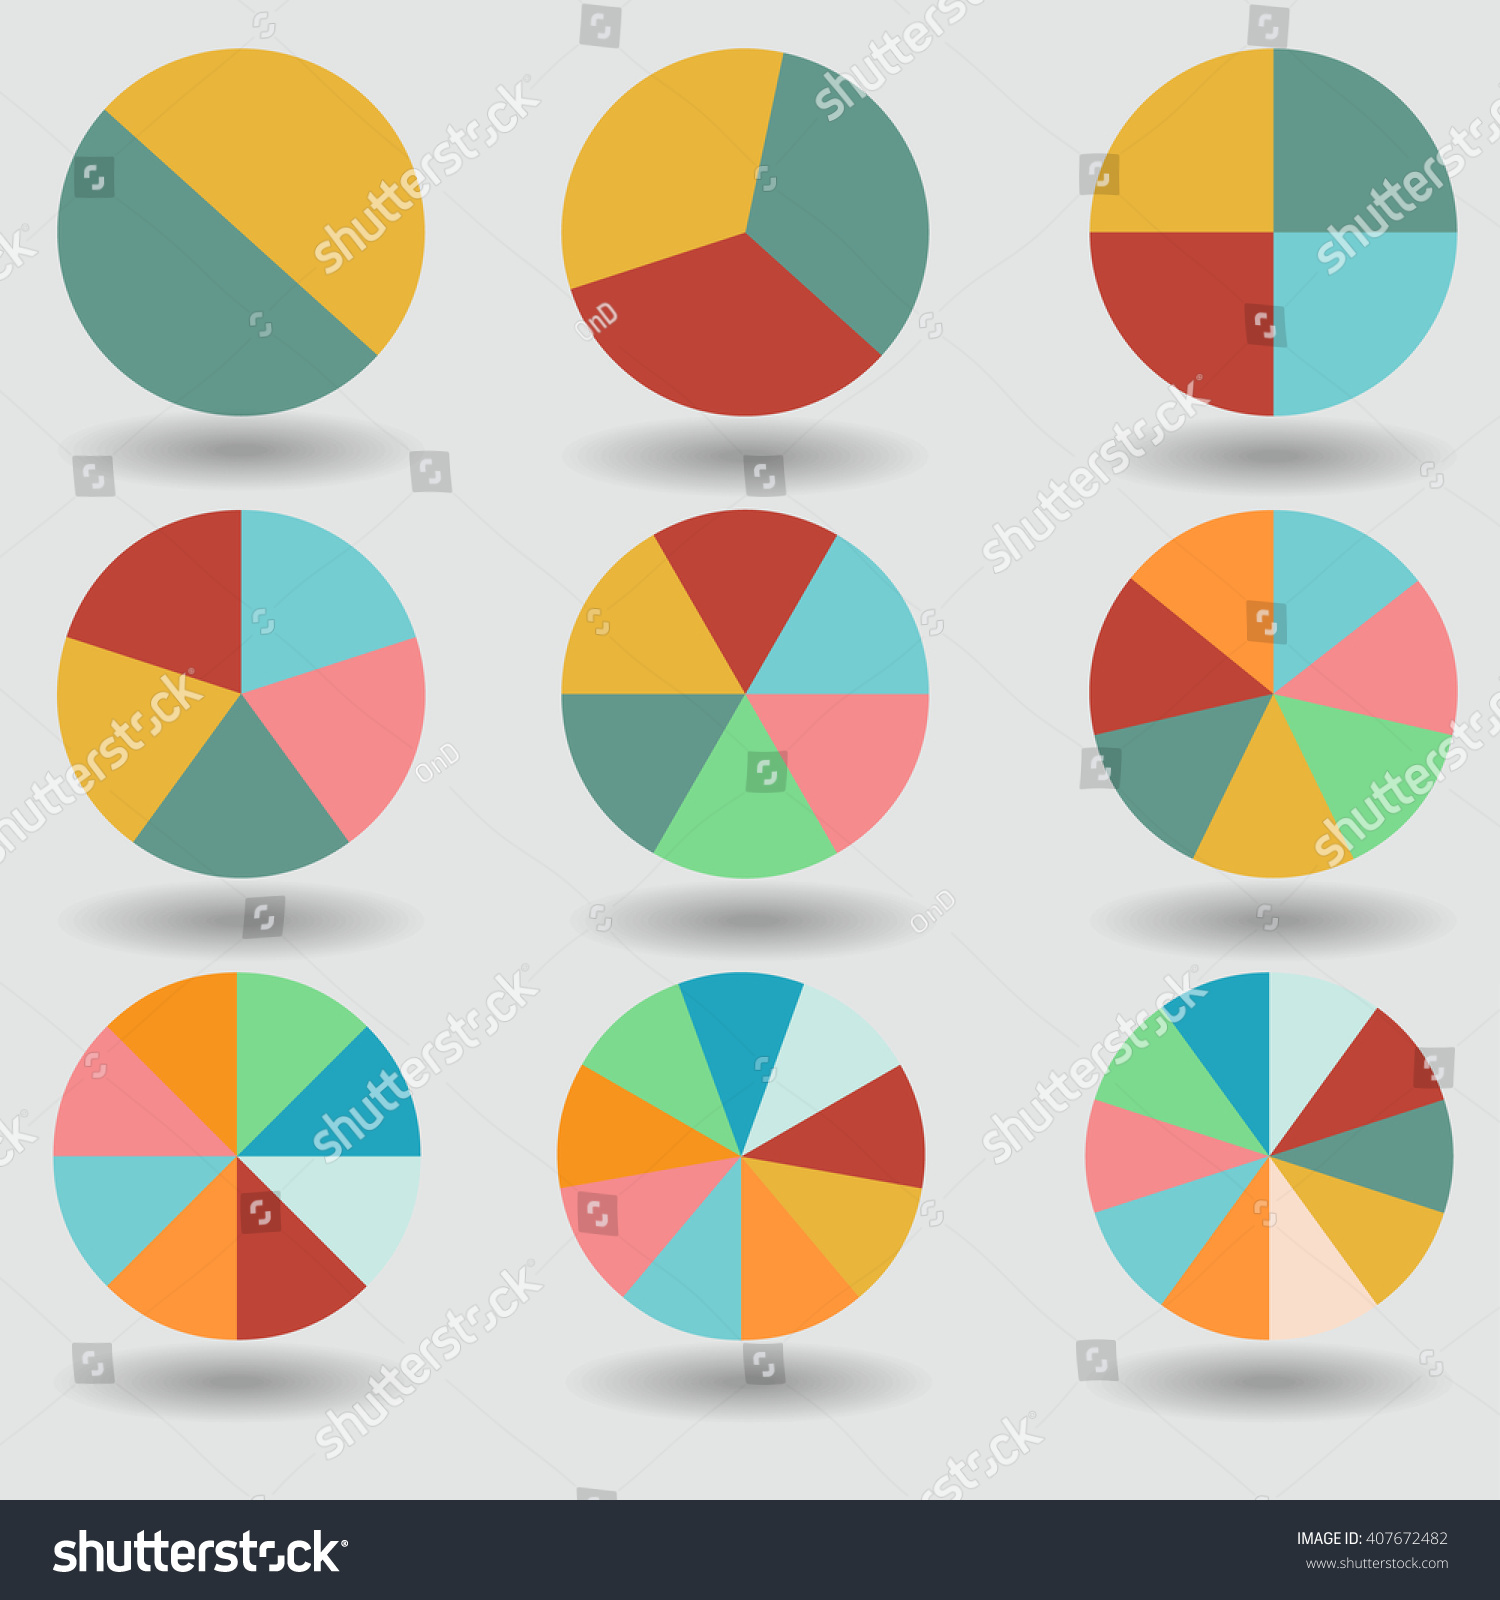 Pie Graph Circle Chart Set Illustration Stock Vector 407672482 ...